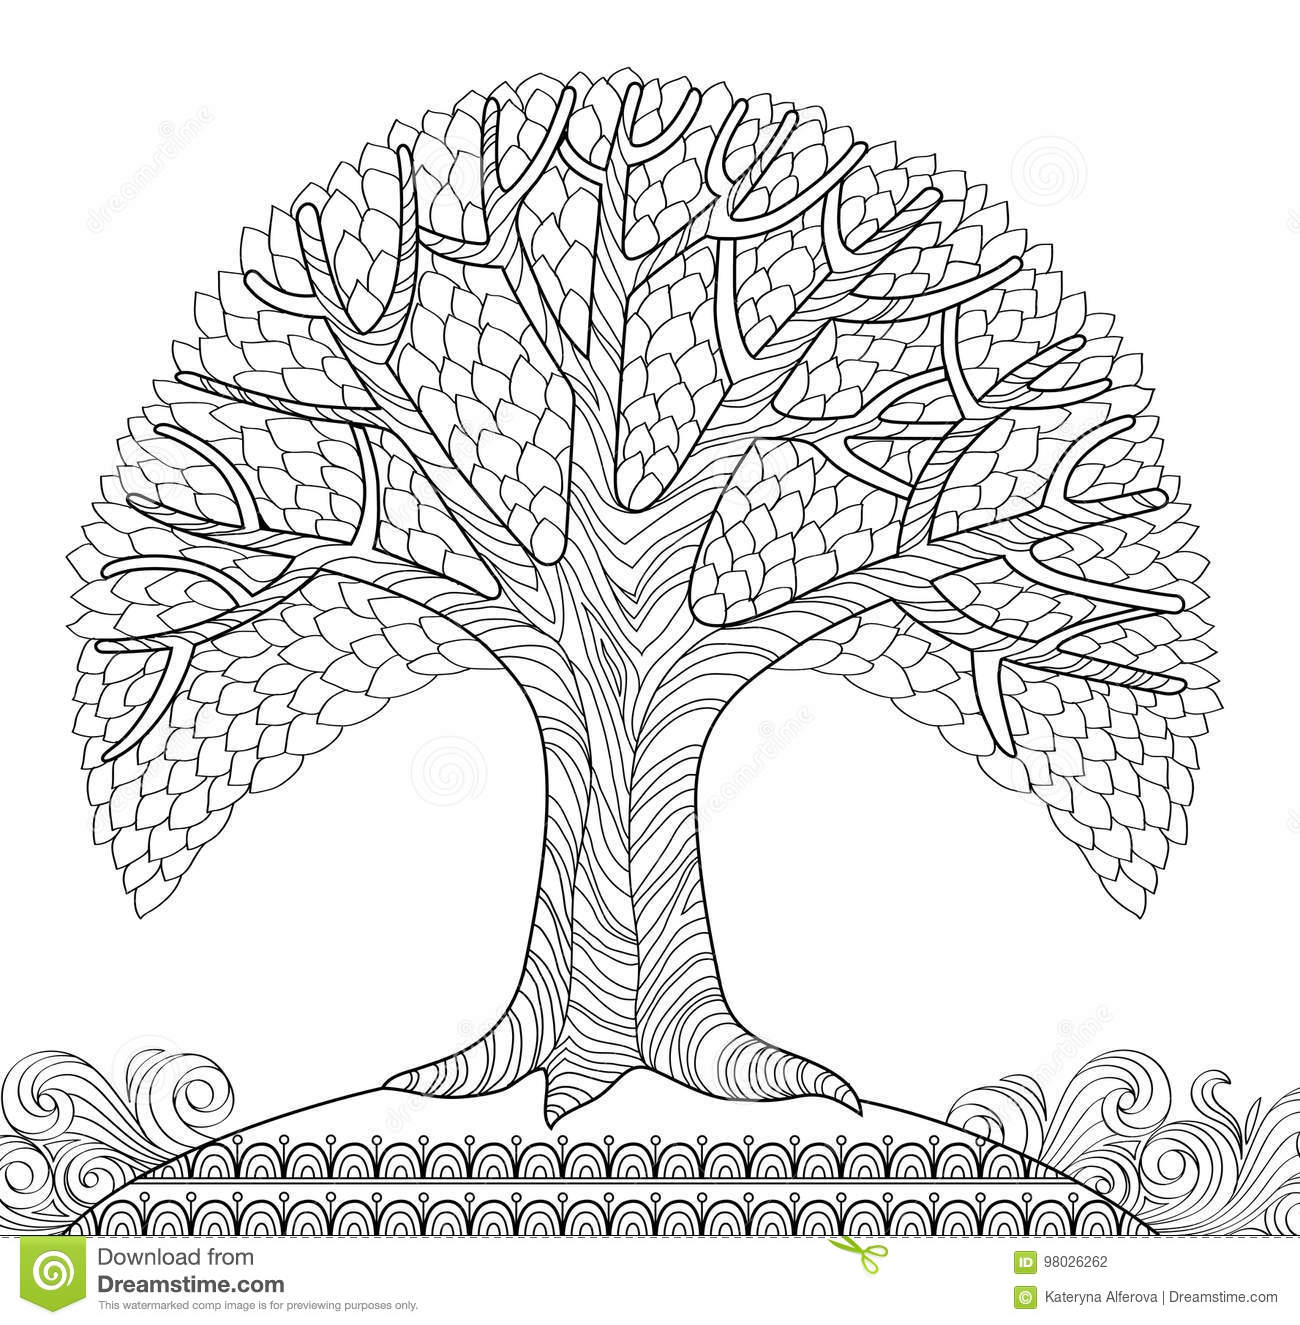 Coloriage Arbre Anti Stress.Arbre Decoratif Page Antistress Adulte De Coloration Griffonnage